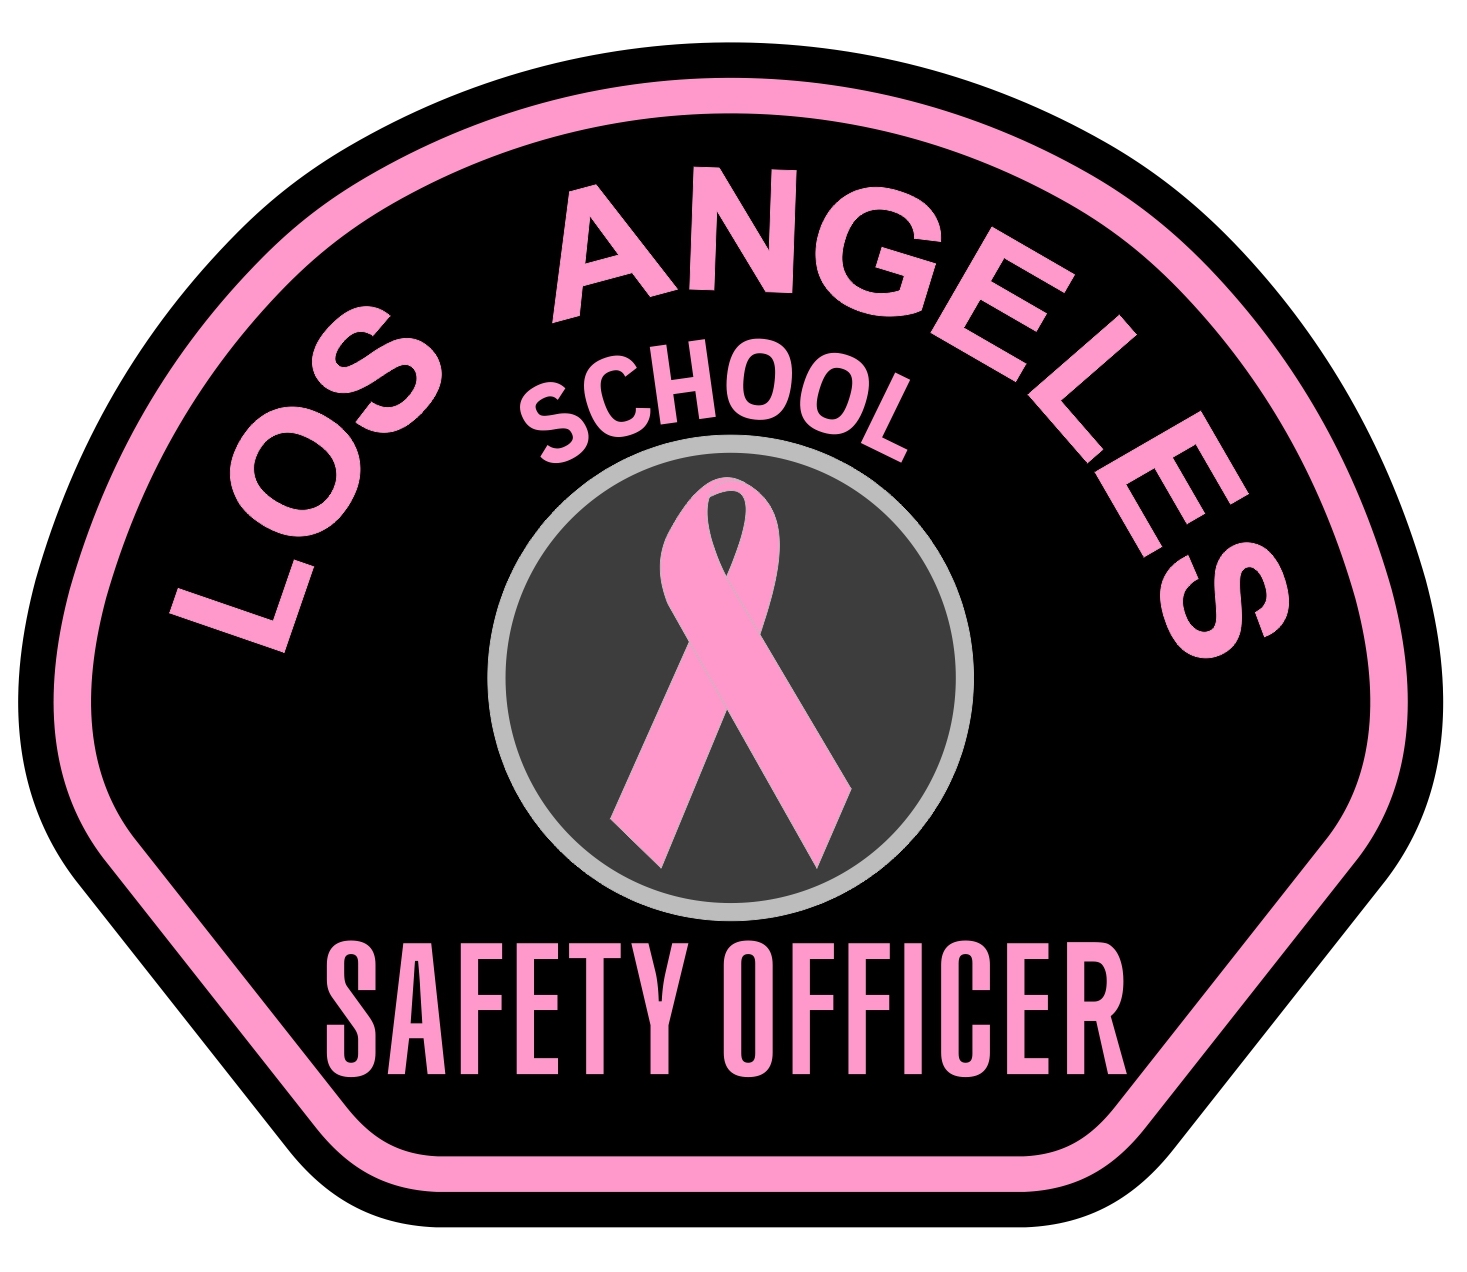 Los Angeles School Police (CA) - PINK SAFETY (003)2017.jpg